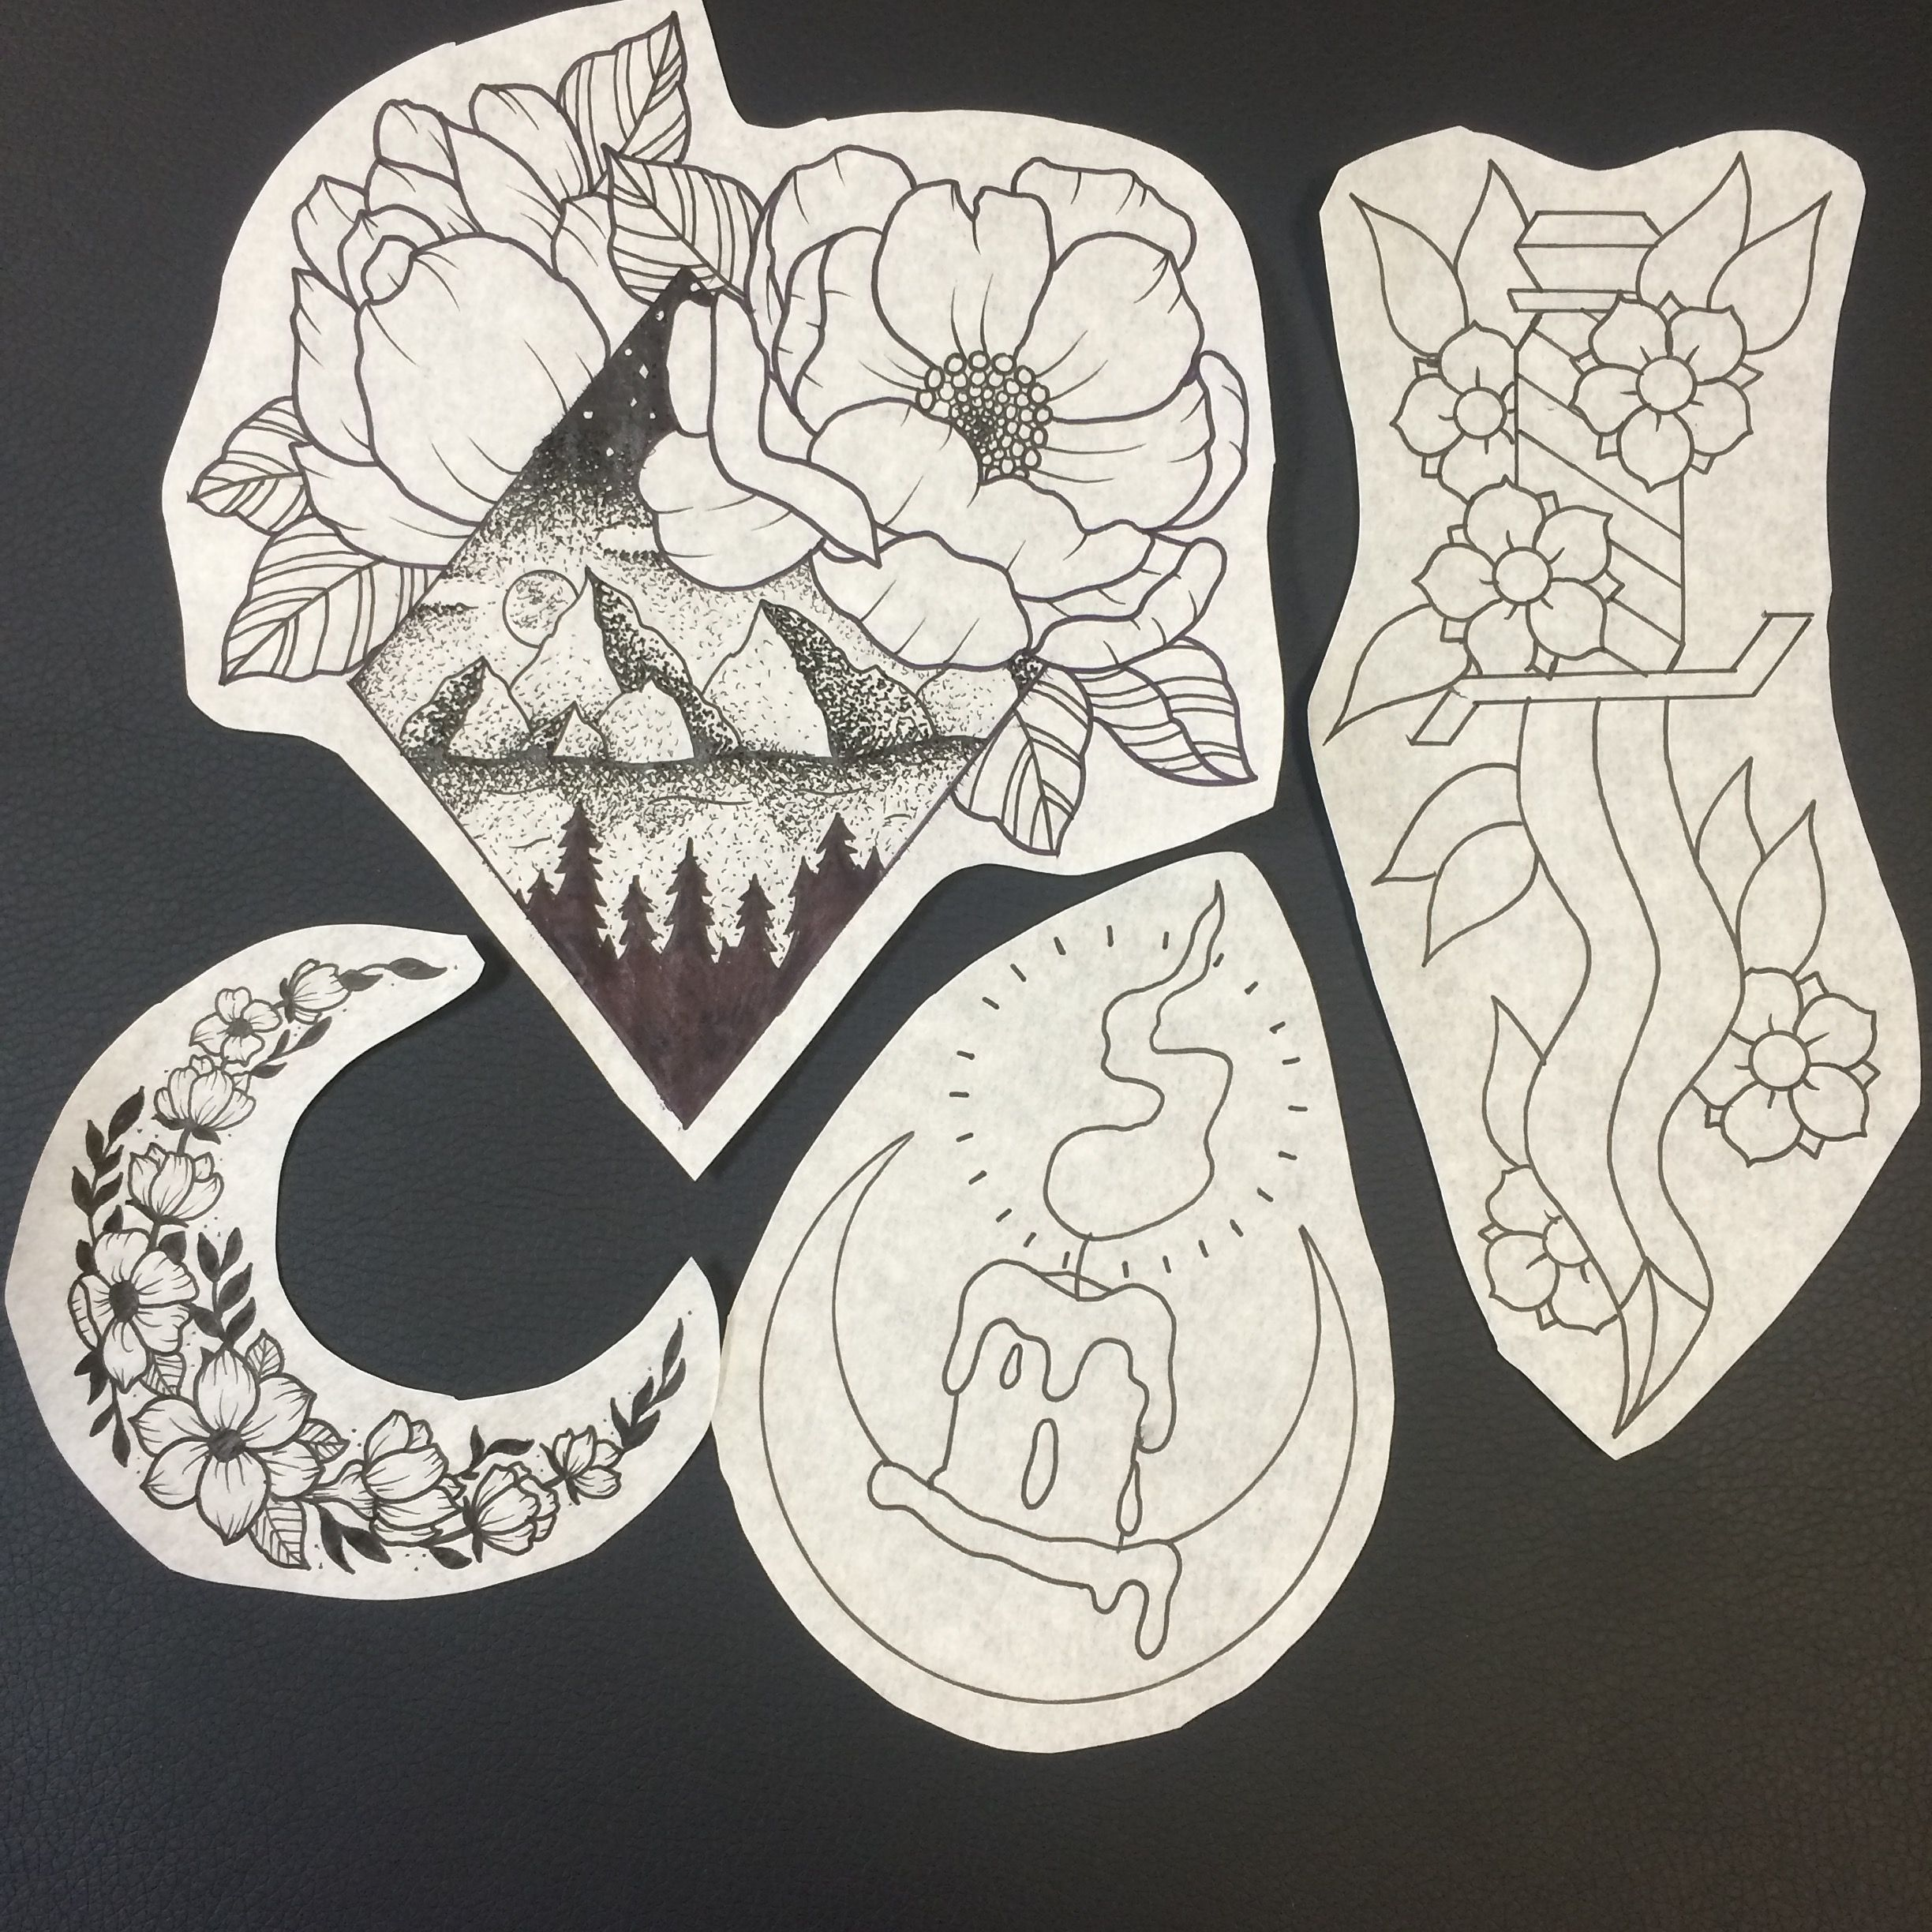 tattoo design of candle knife blade mountains pointillism dot work crescent moon flowers